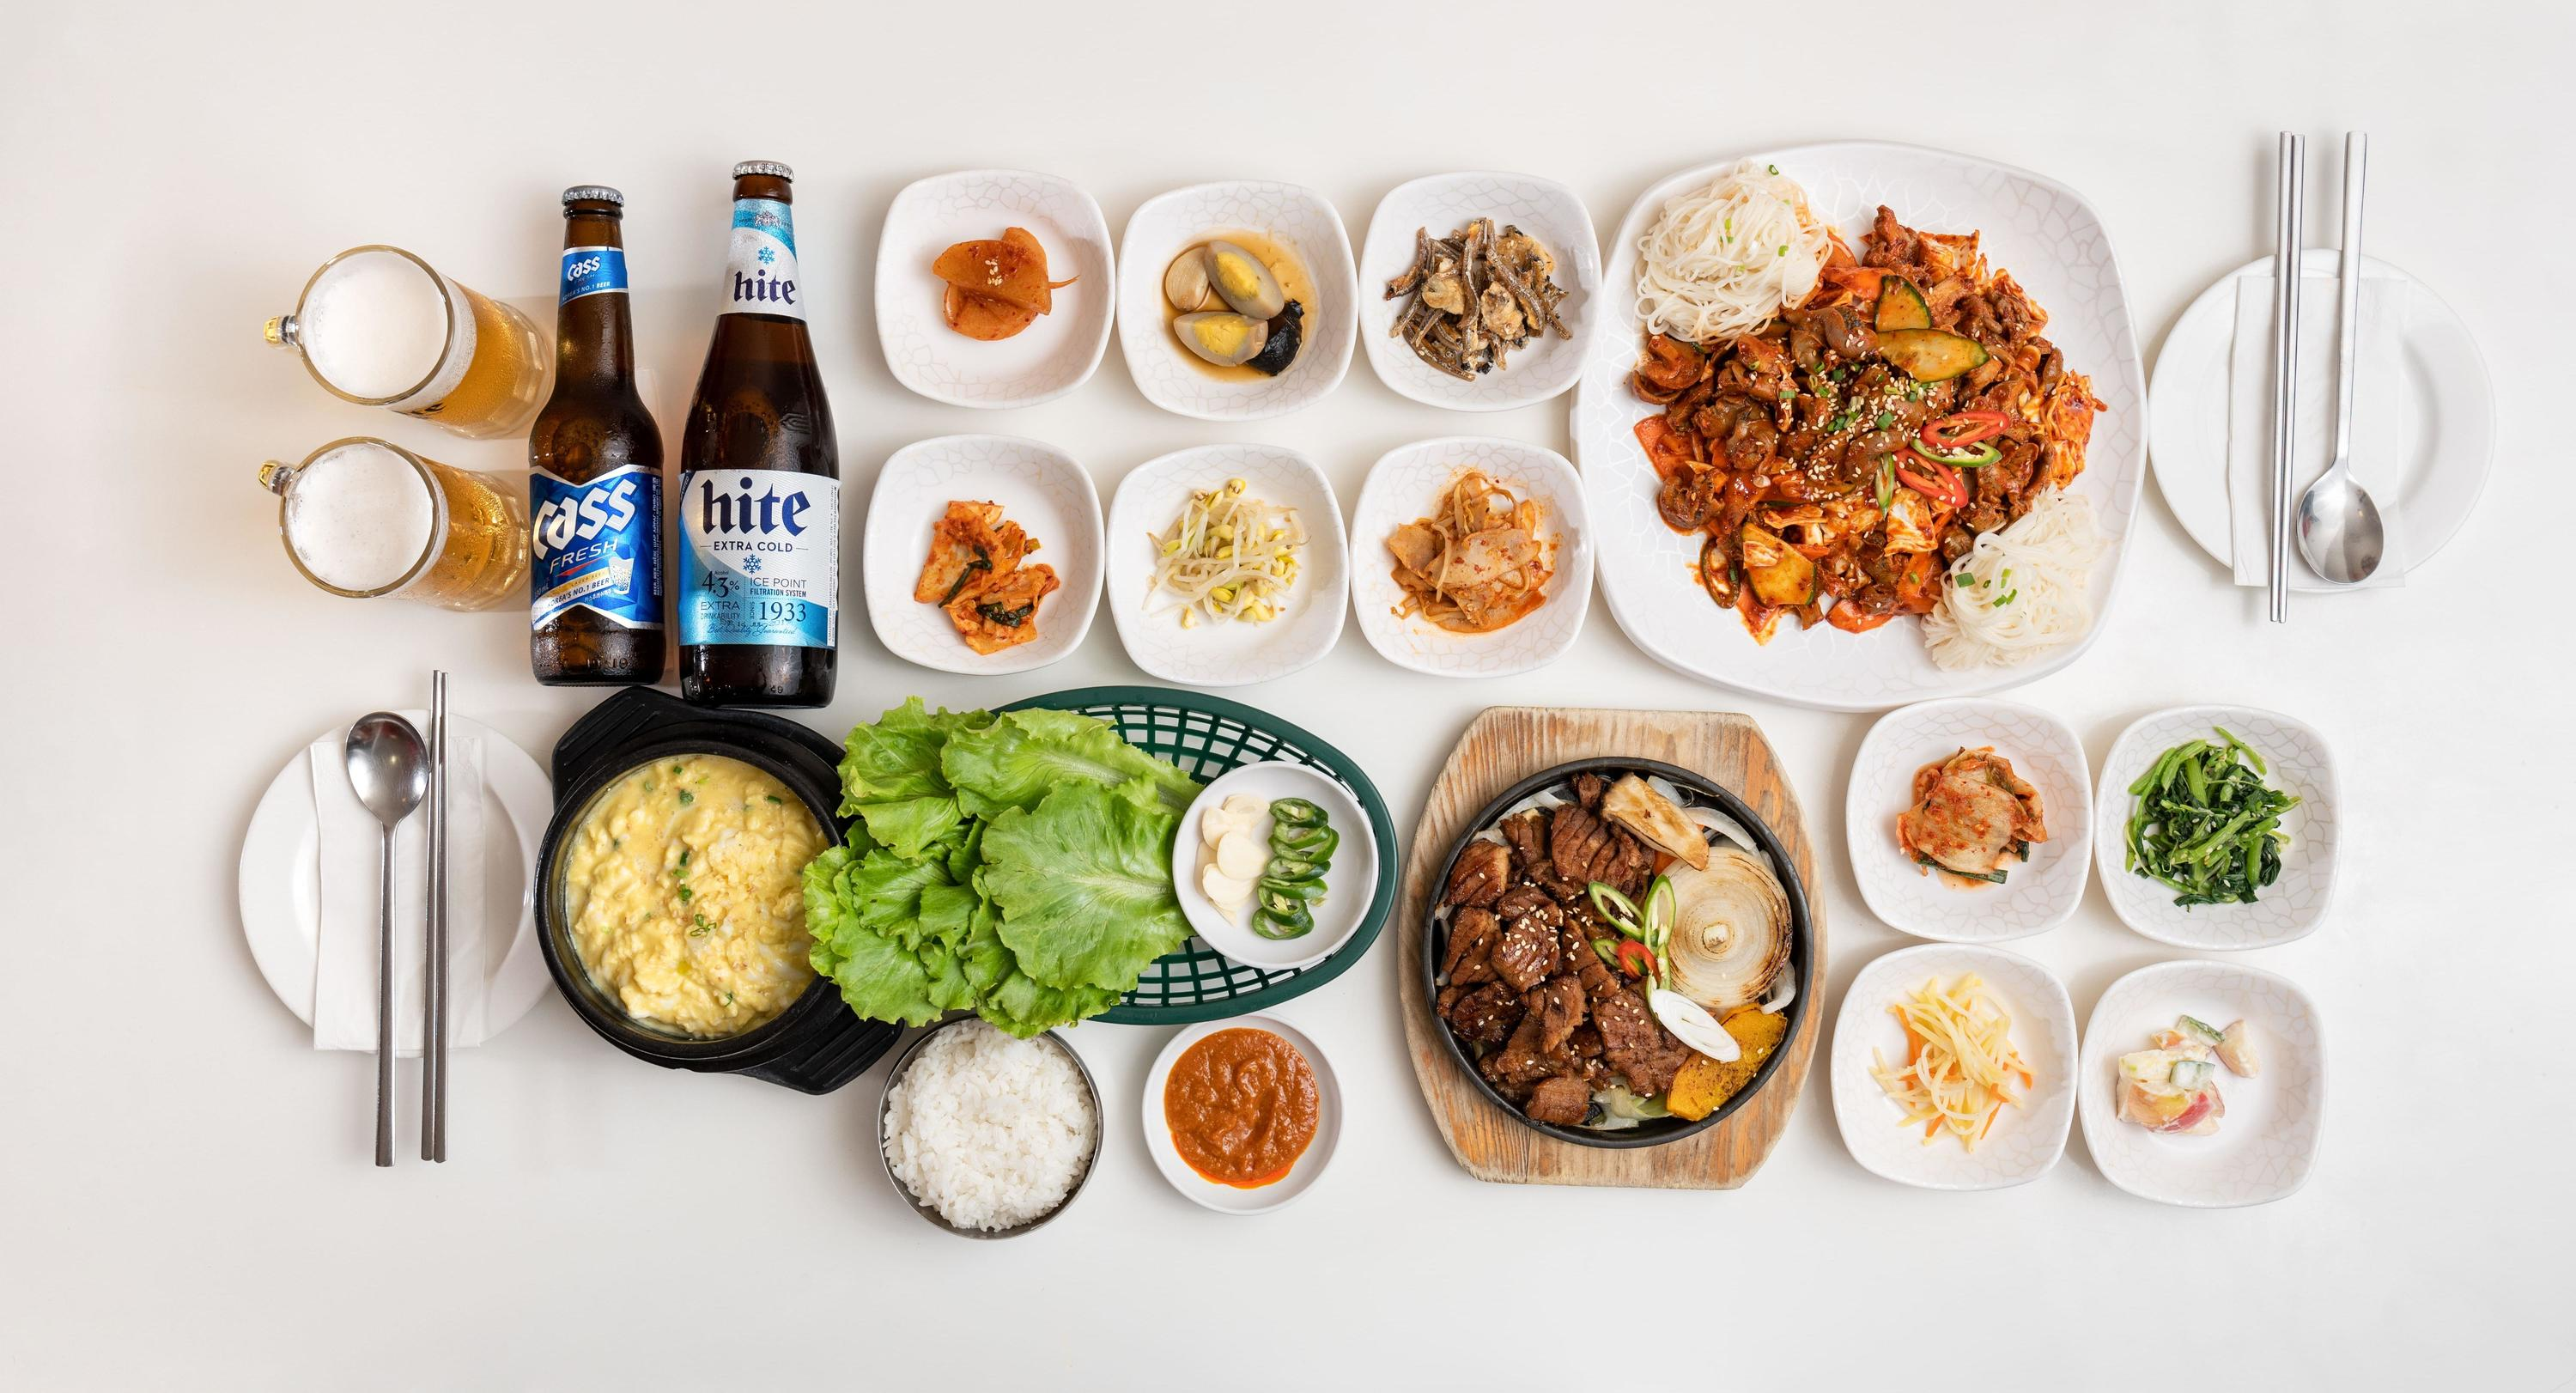 7 Best Restaurants With Korean Food Delivery In Singapore